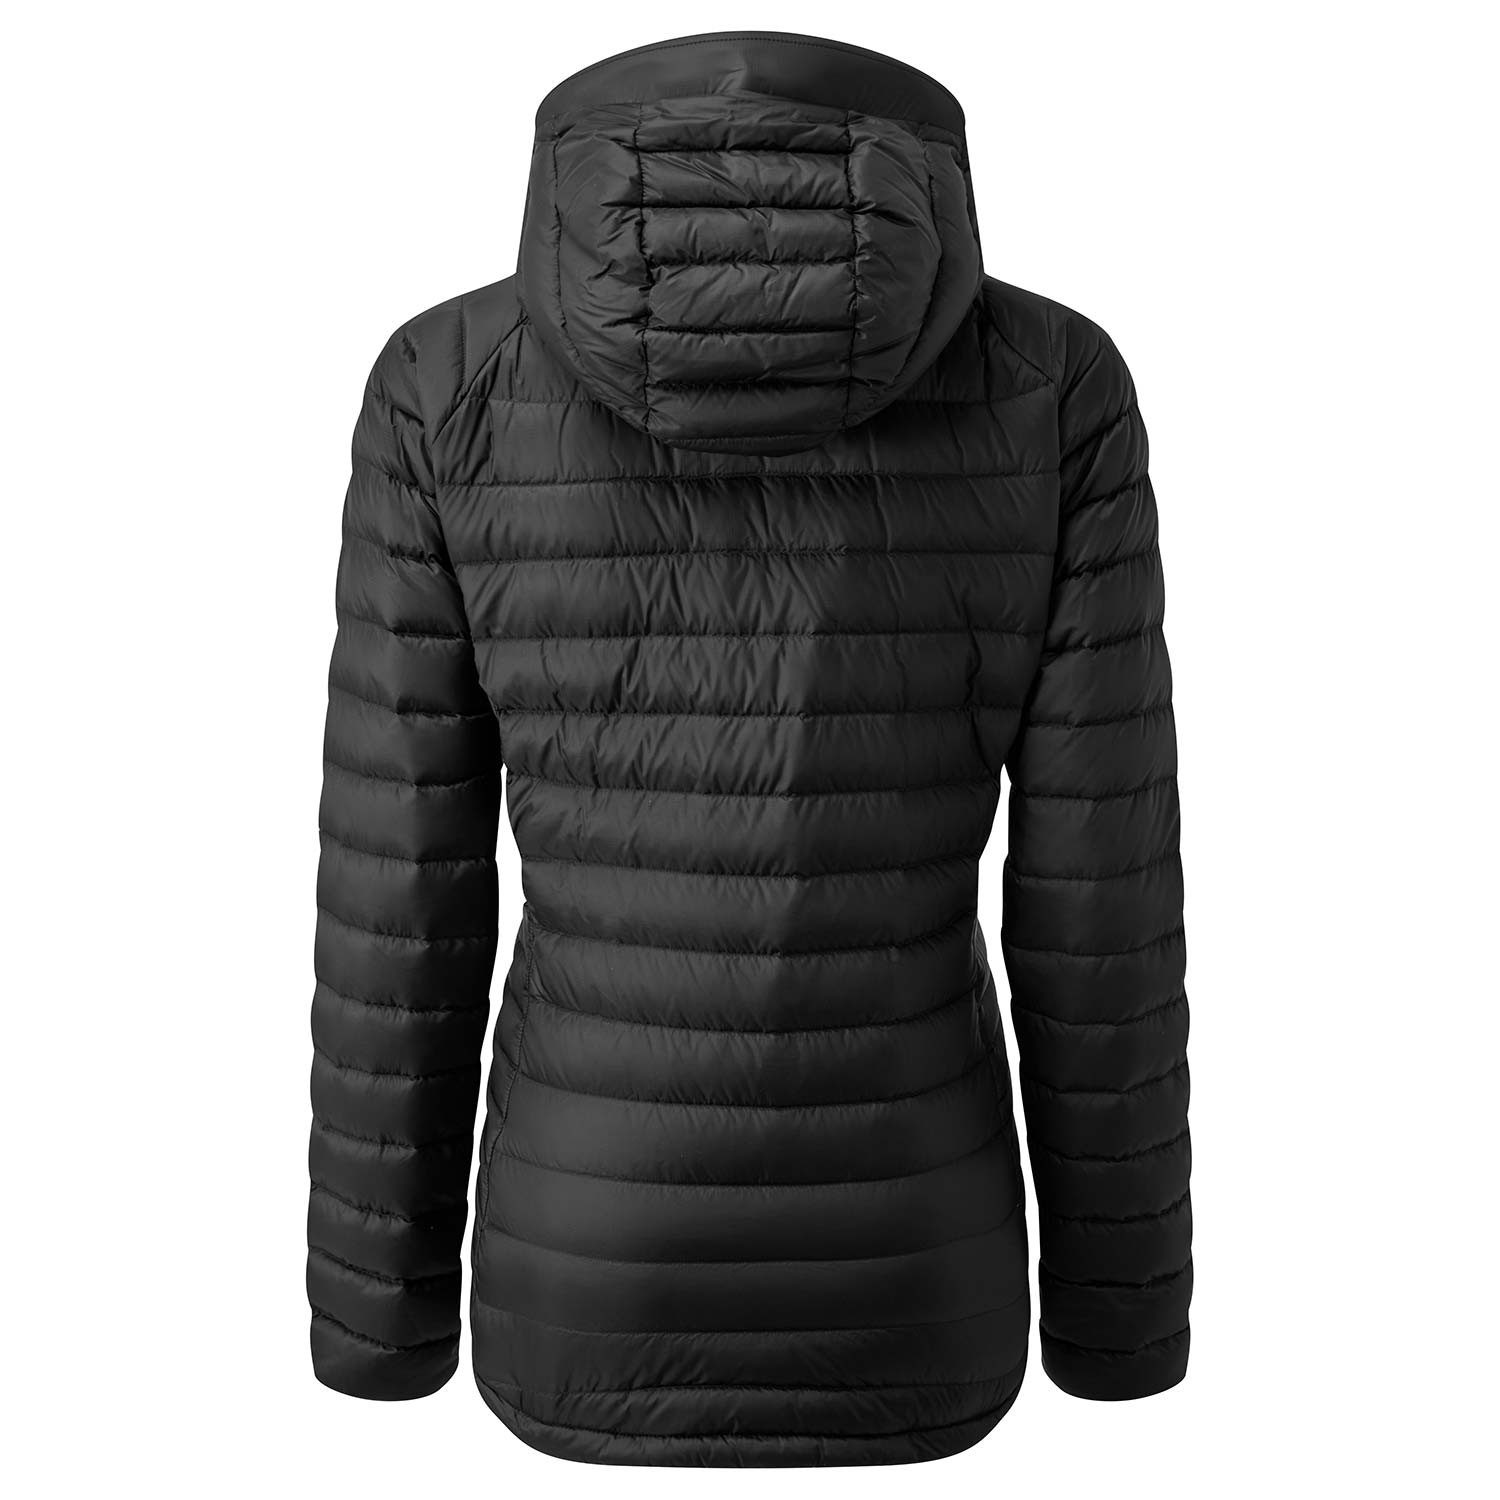 Rab Microlight Alpine Down Jacket - Women's - Black